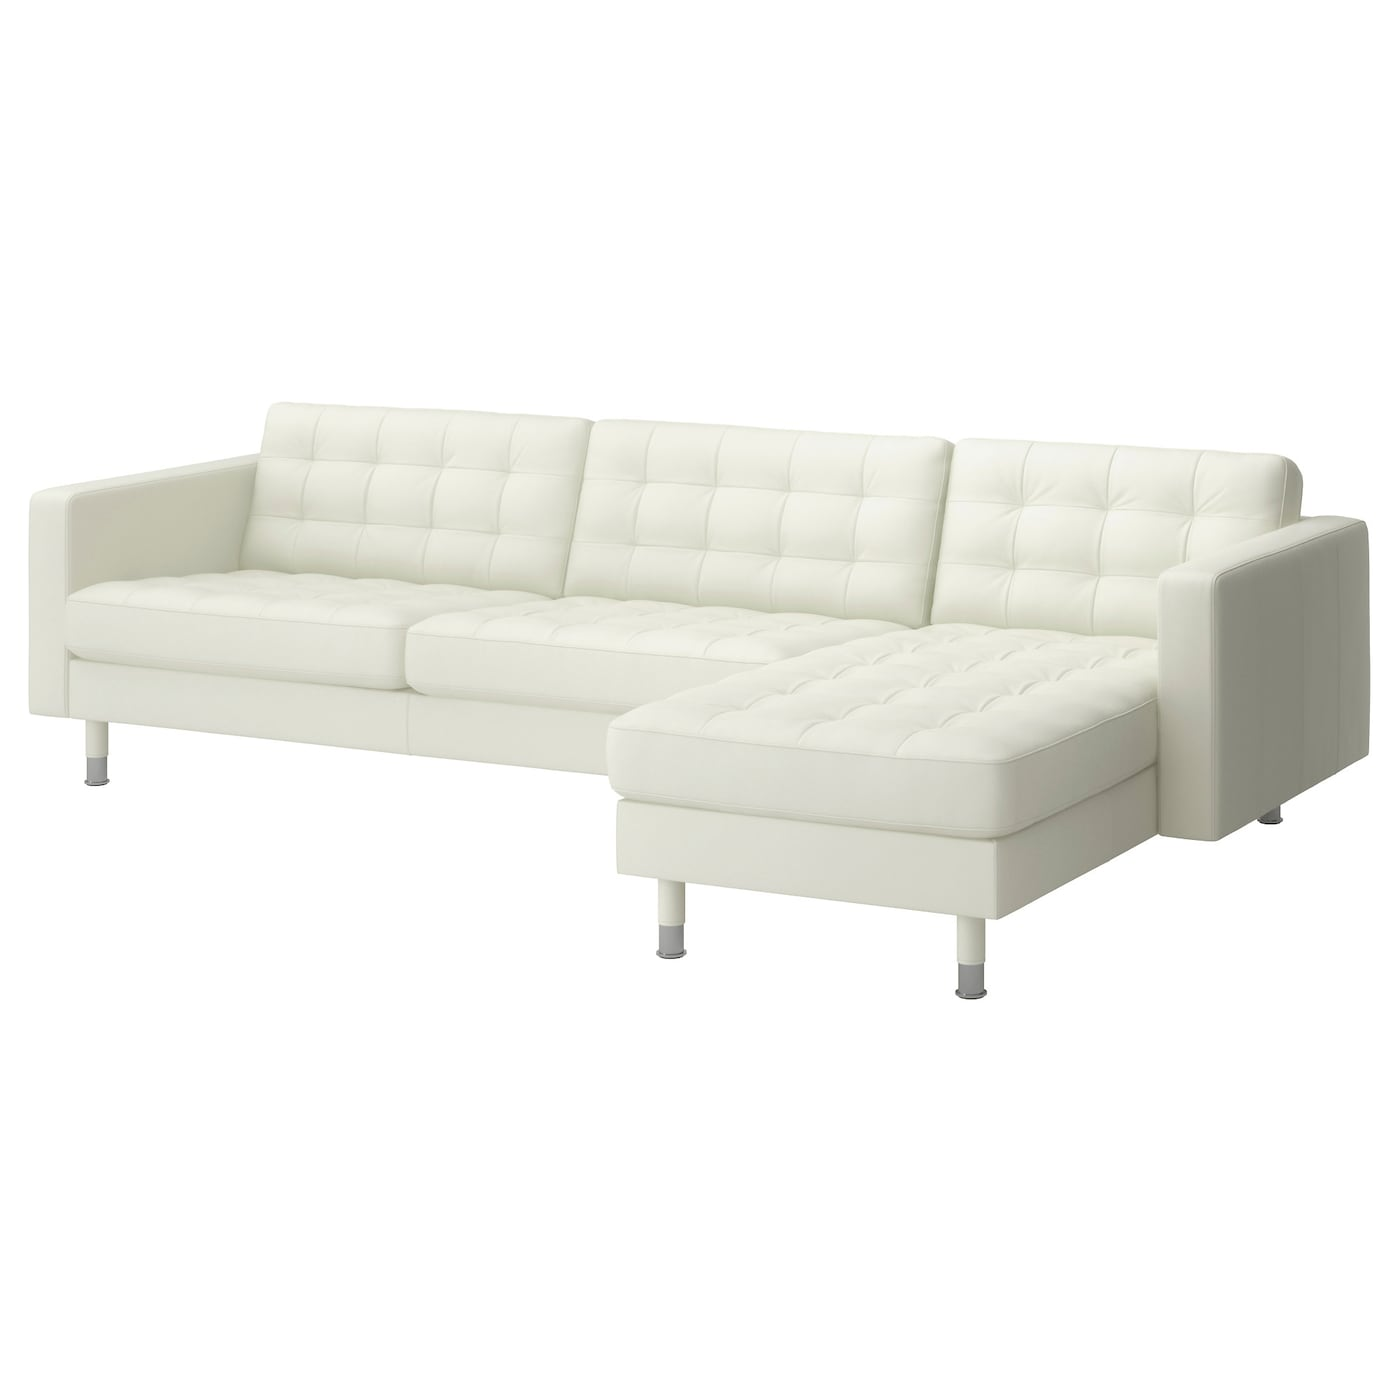 Landskrona three seat sofa and chaise longue grann bomstad for Chaise longue en aluminium